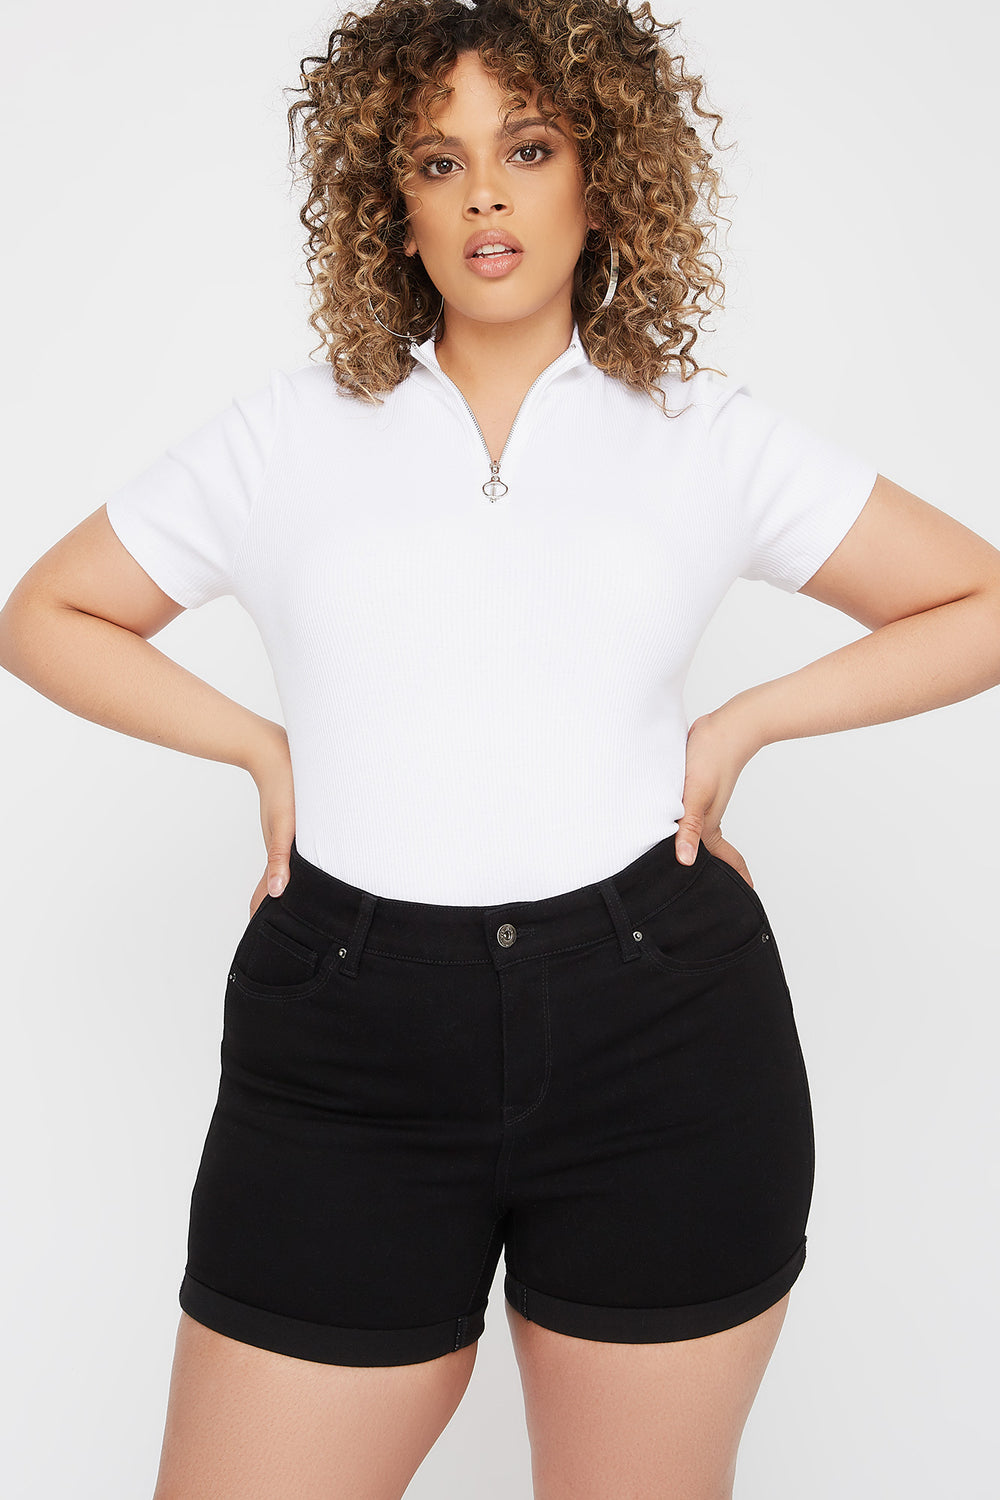 Plus Size Butt, I Love You High-Rise Push-Up Cuffed Short Black